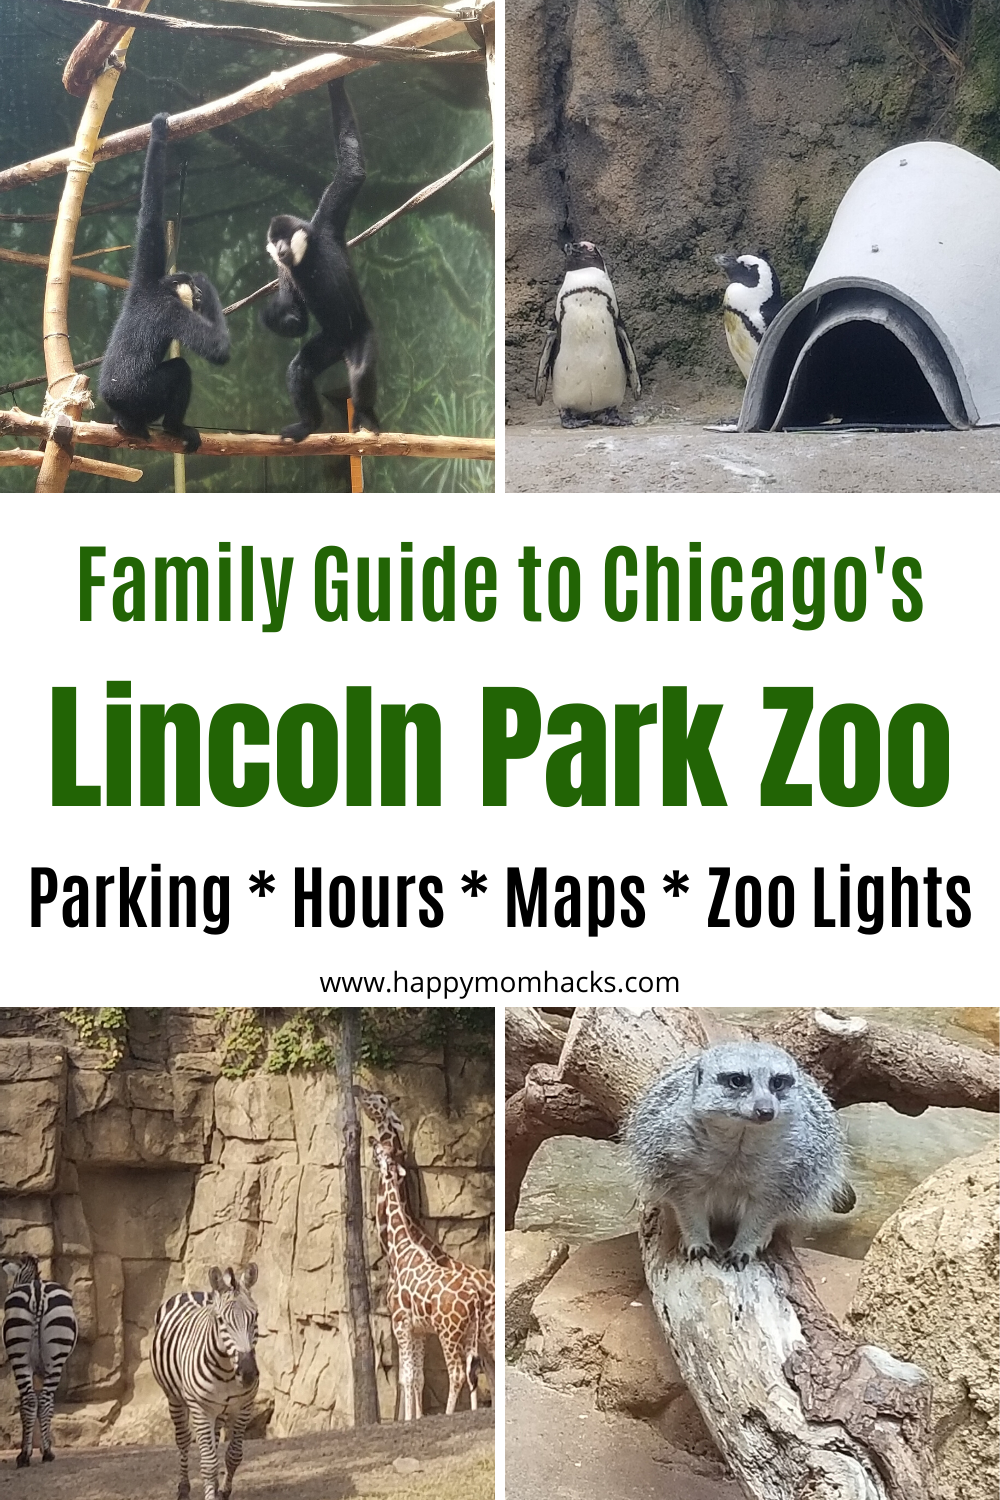 Lincoln Park Zoo Chicago Parking Hours Map Zoo Lights Happy Mom Hacks Lincoln Park Zoo Chicago Lincoln Park Zoo Chicago Parks